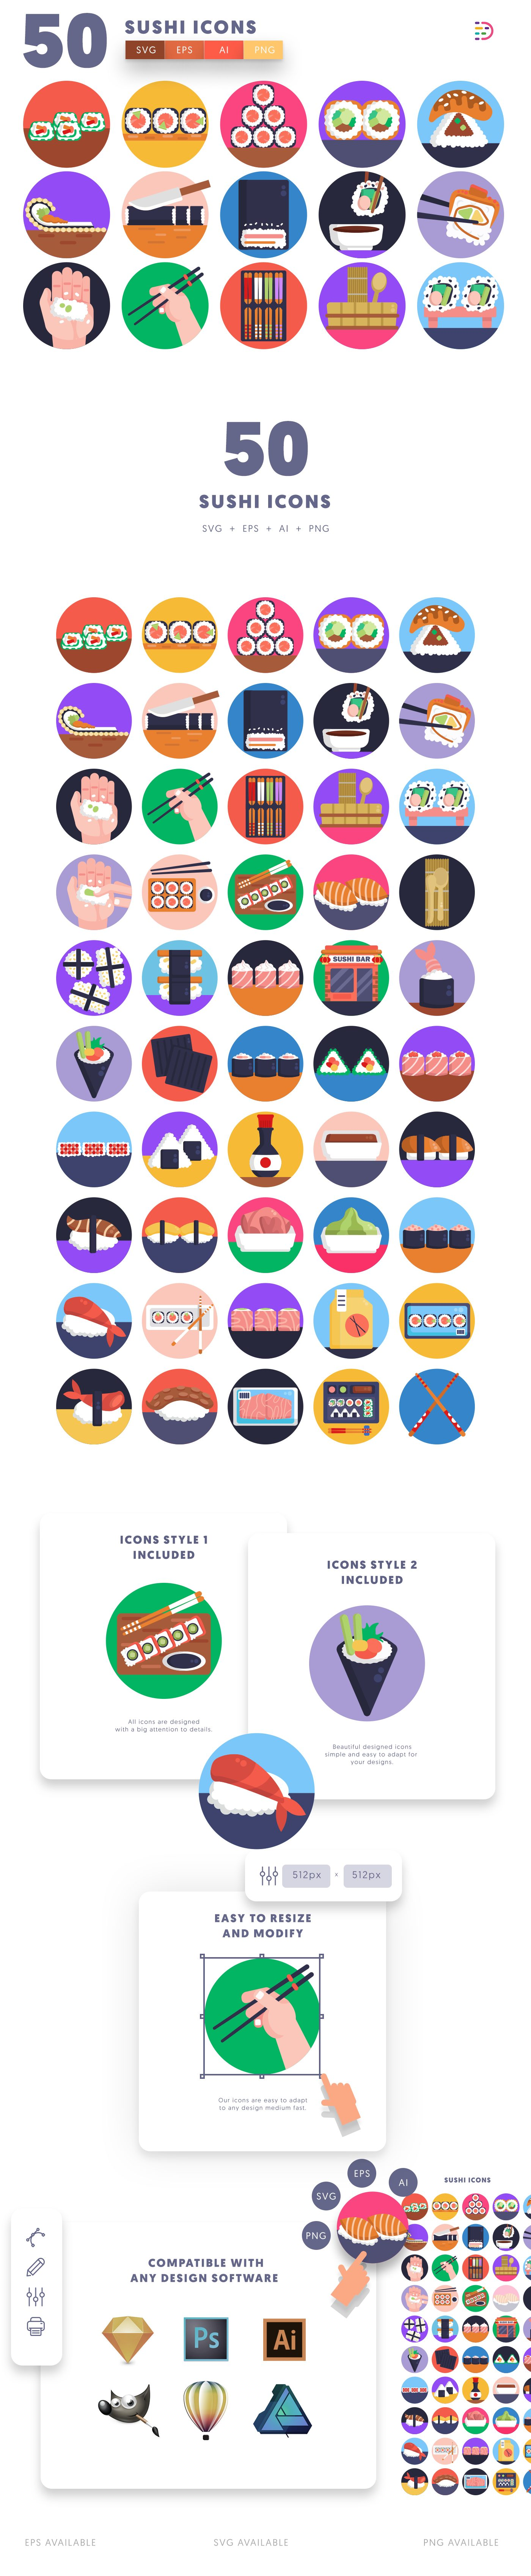 Sushi icons info graphic